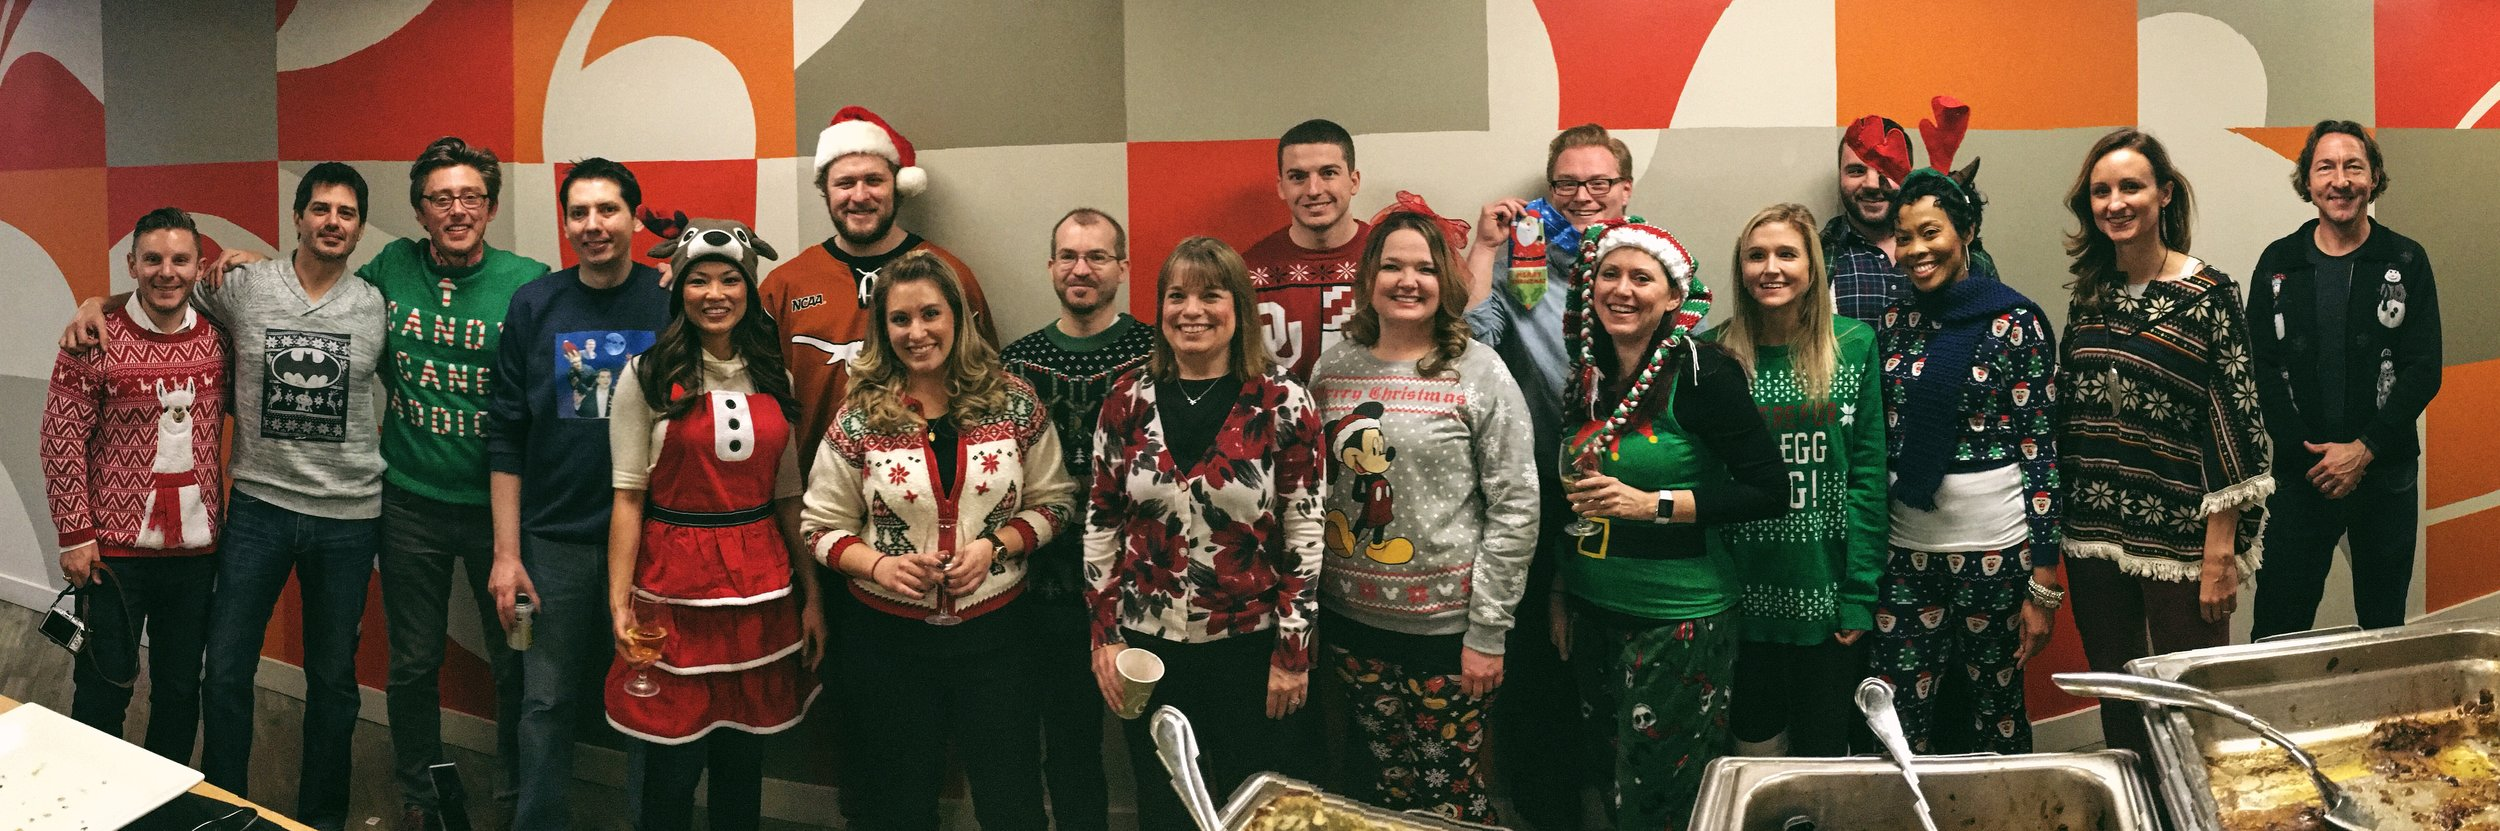 Our Dallas team gets into the holly jolly spirit for our holiday sweater contest.